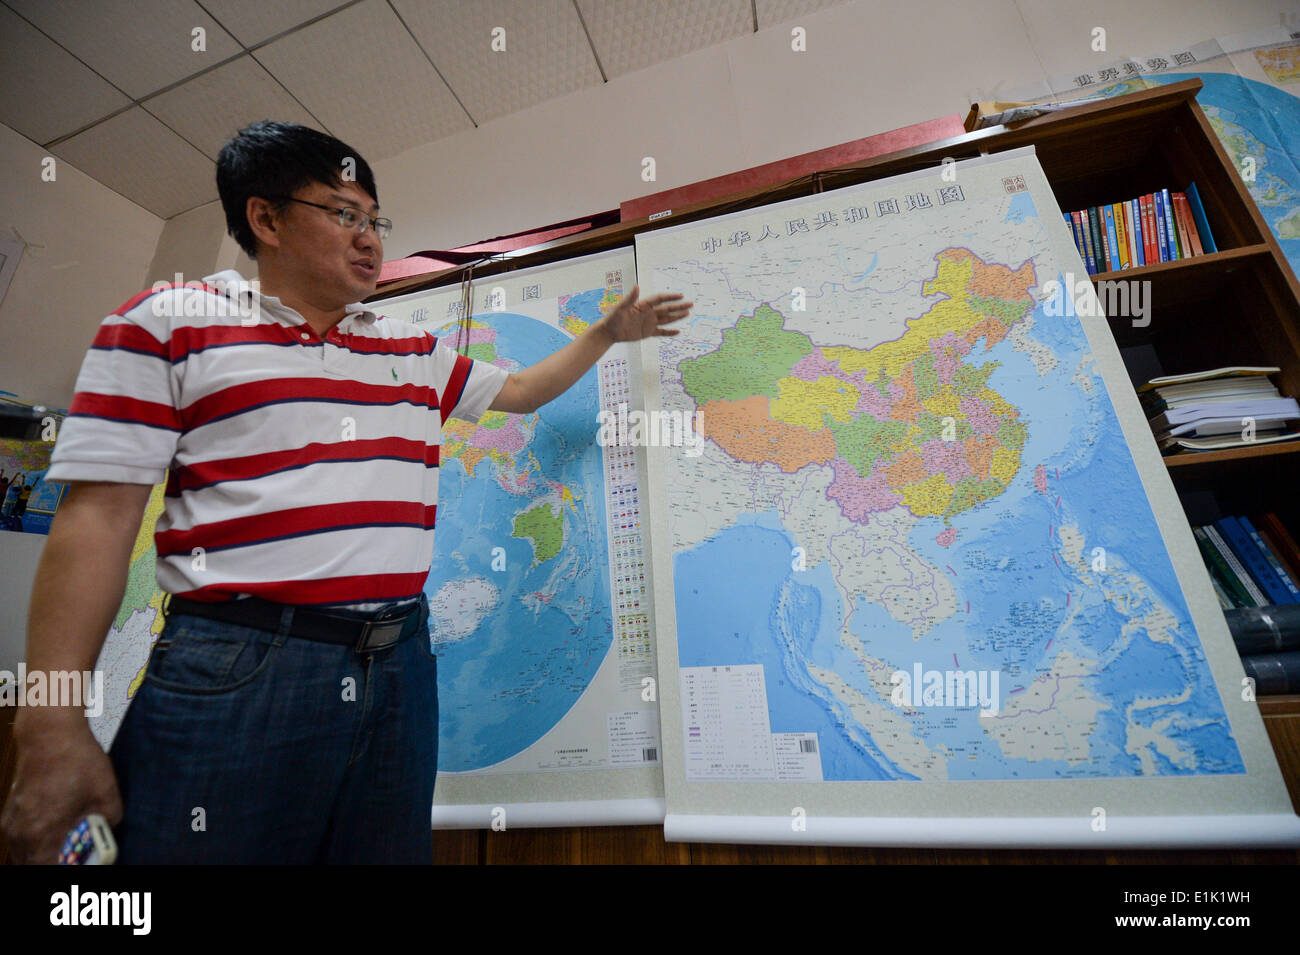 Changsha, China's Hunan Province. 23rd June, 2014. Lei Yixun, editor-in-chief of Hunan map publishing house shows a vertical atlas of China which is newly-issued by the publishing house in Changsha, capital of central China's Hunan Province, on June 23, 2014. Islands in South China Sea share the same scale with mainland and are better shown than traditional map. © Bai Yu/Xinhua/Alamy Live News - Stock Image